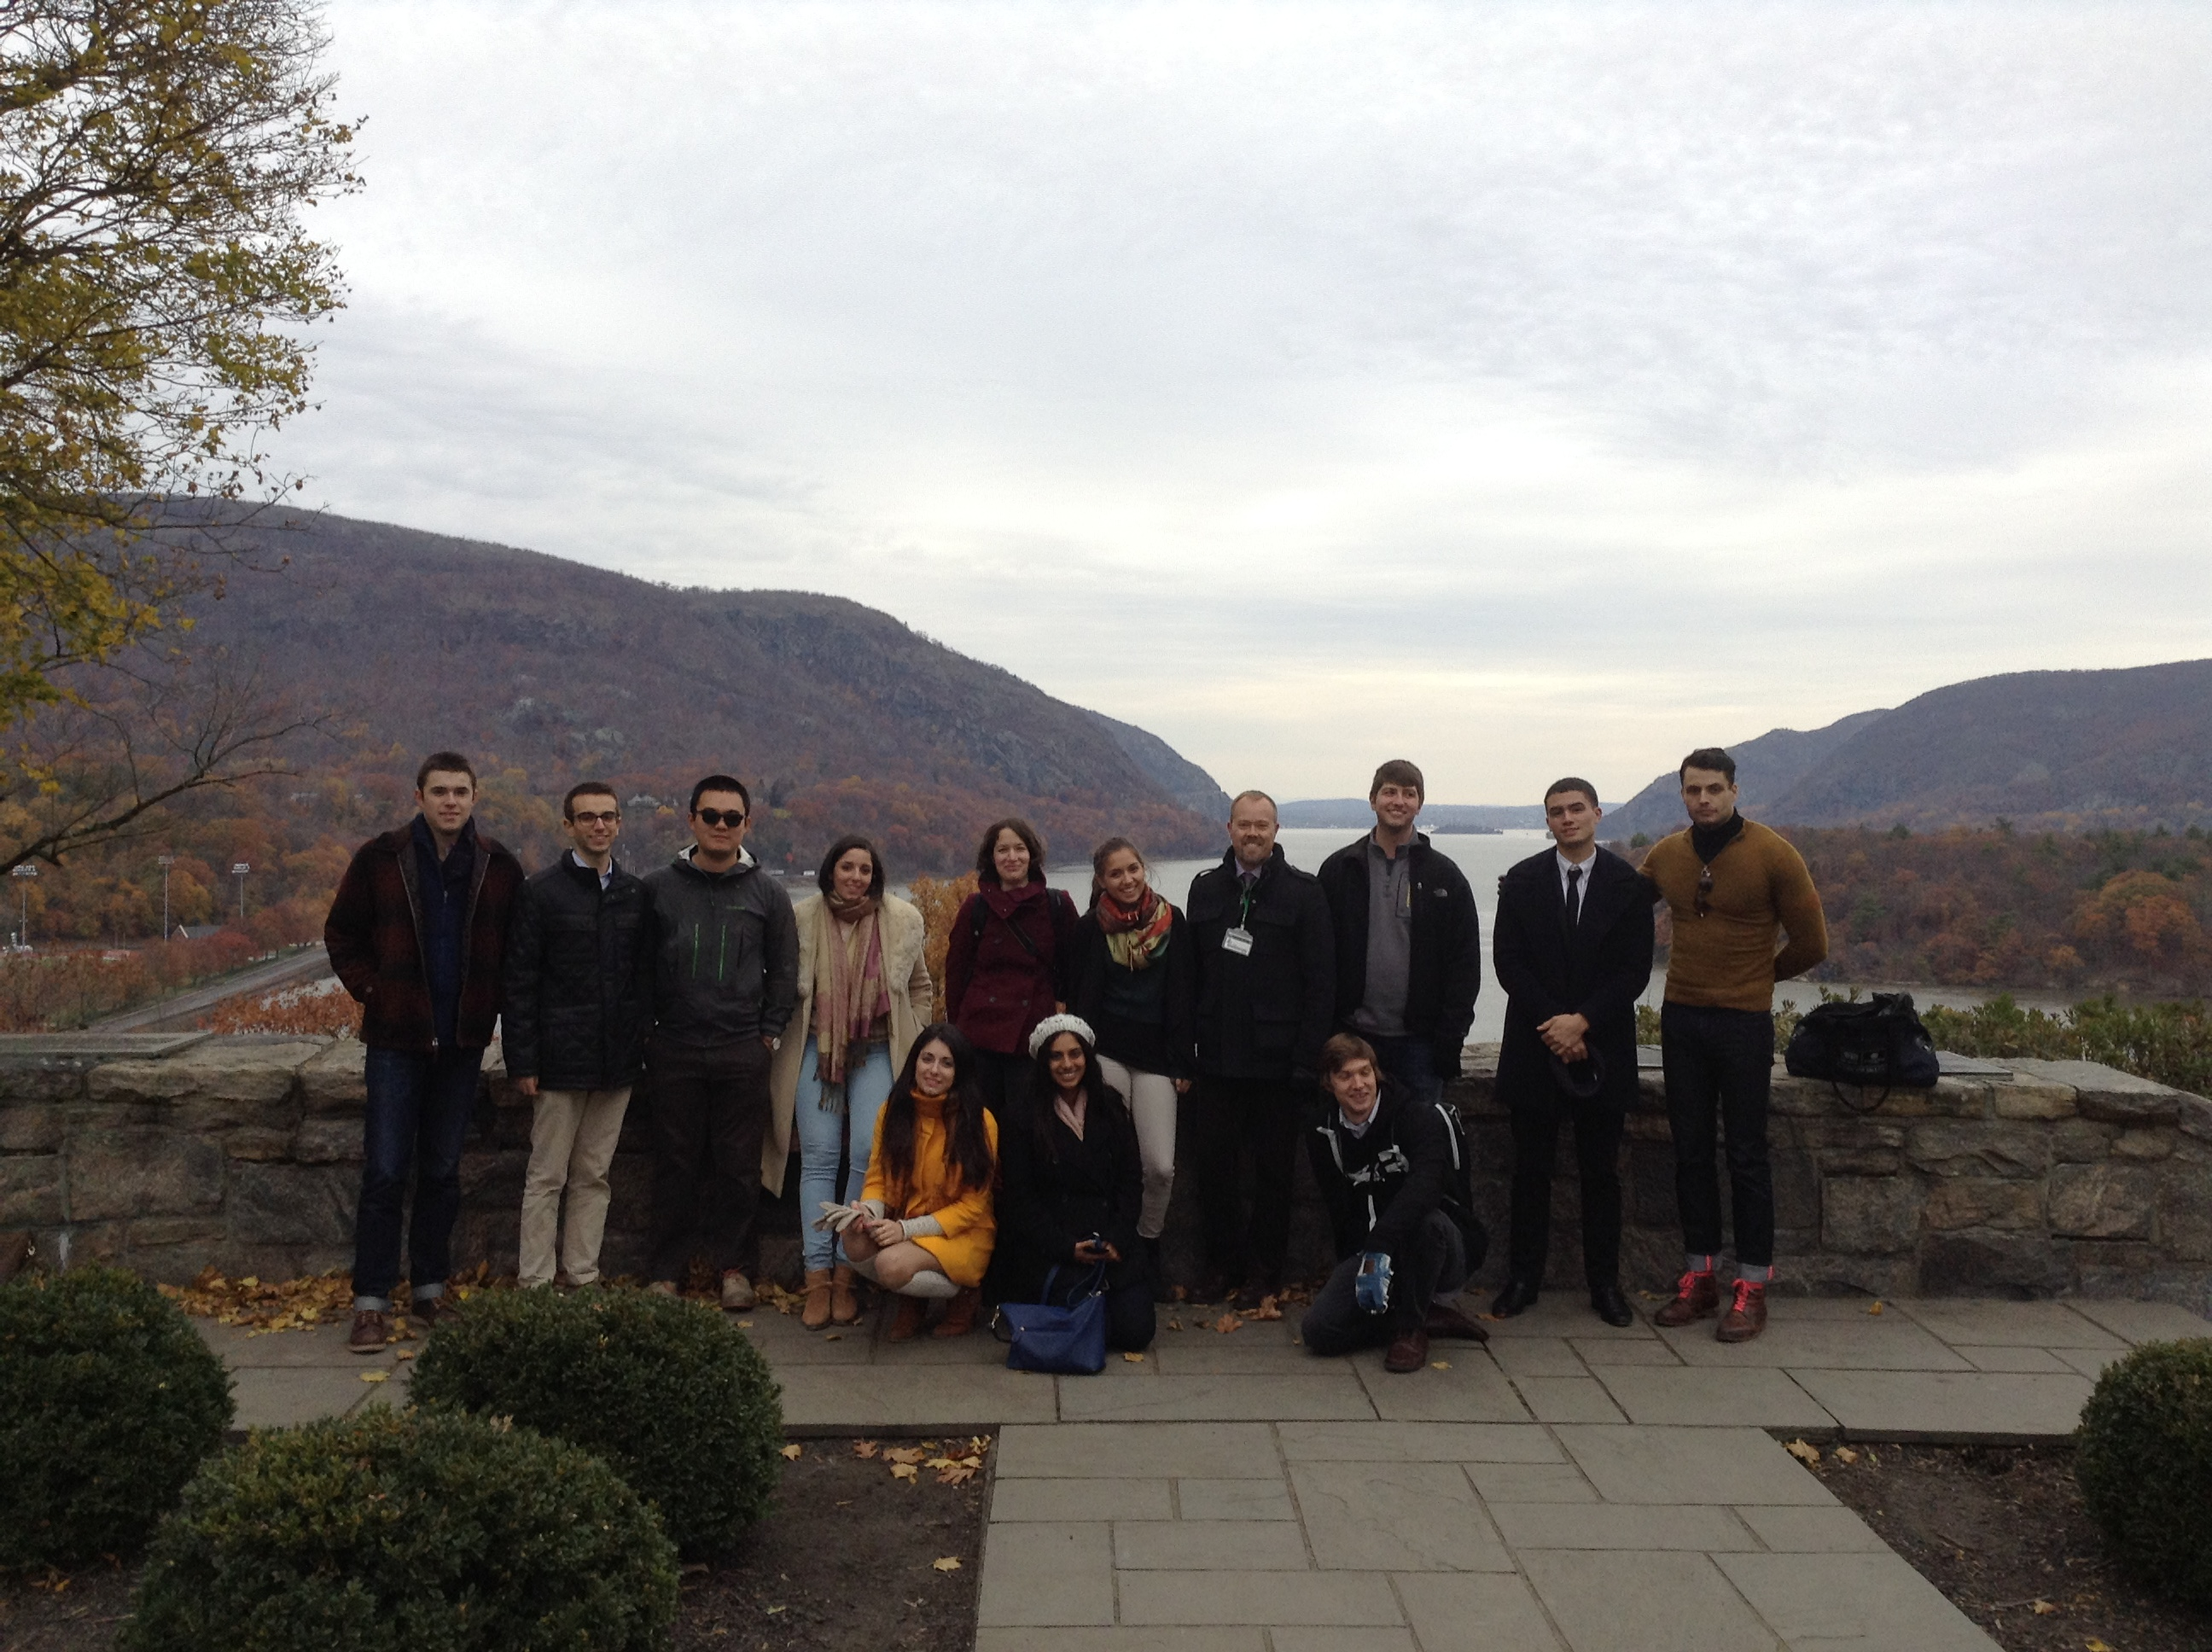 This Week at BGIA: Panels, Alumni Events and a Trip to West Point (11/10/14-11/16/14)